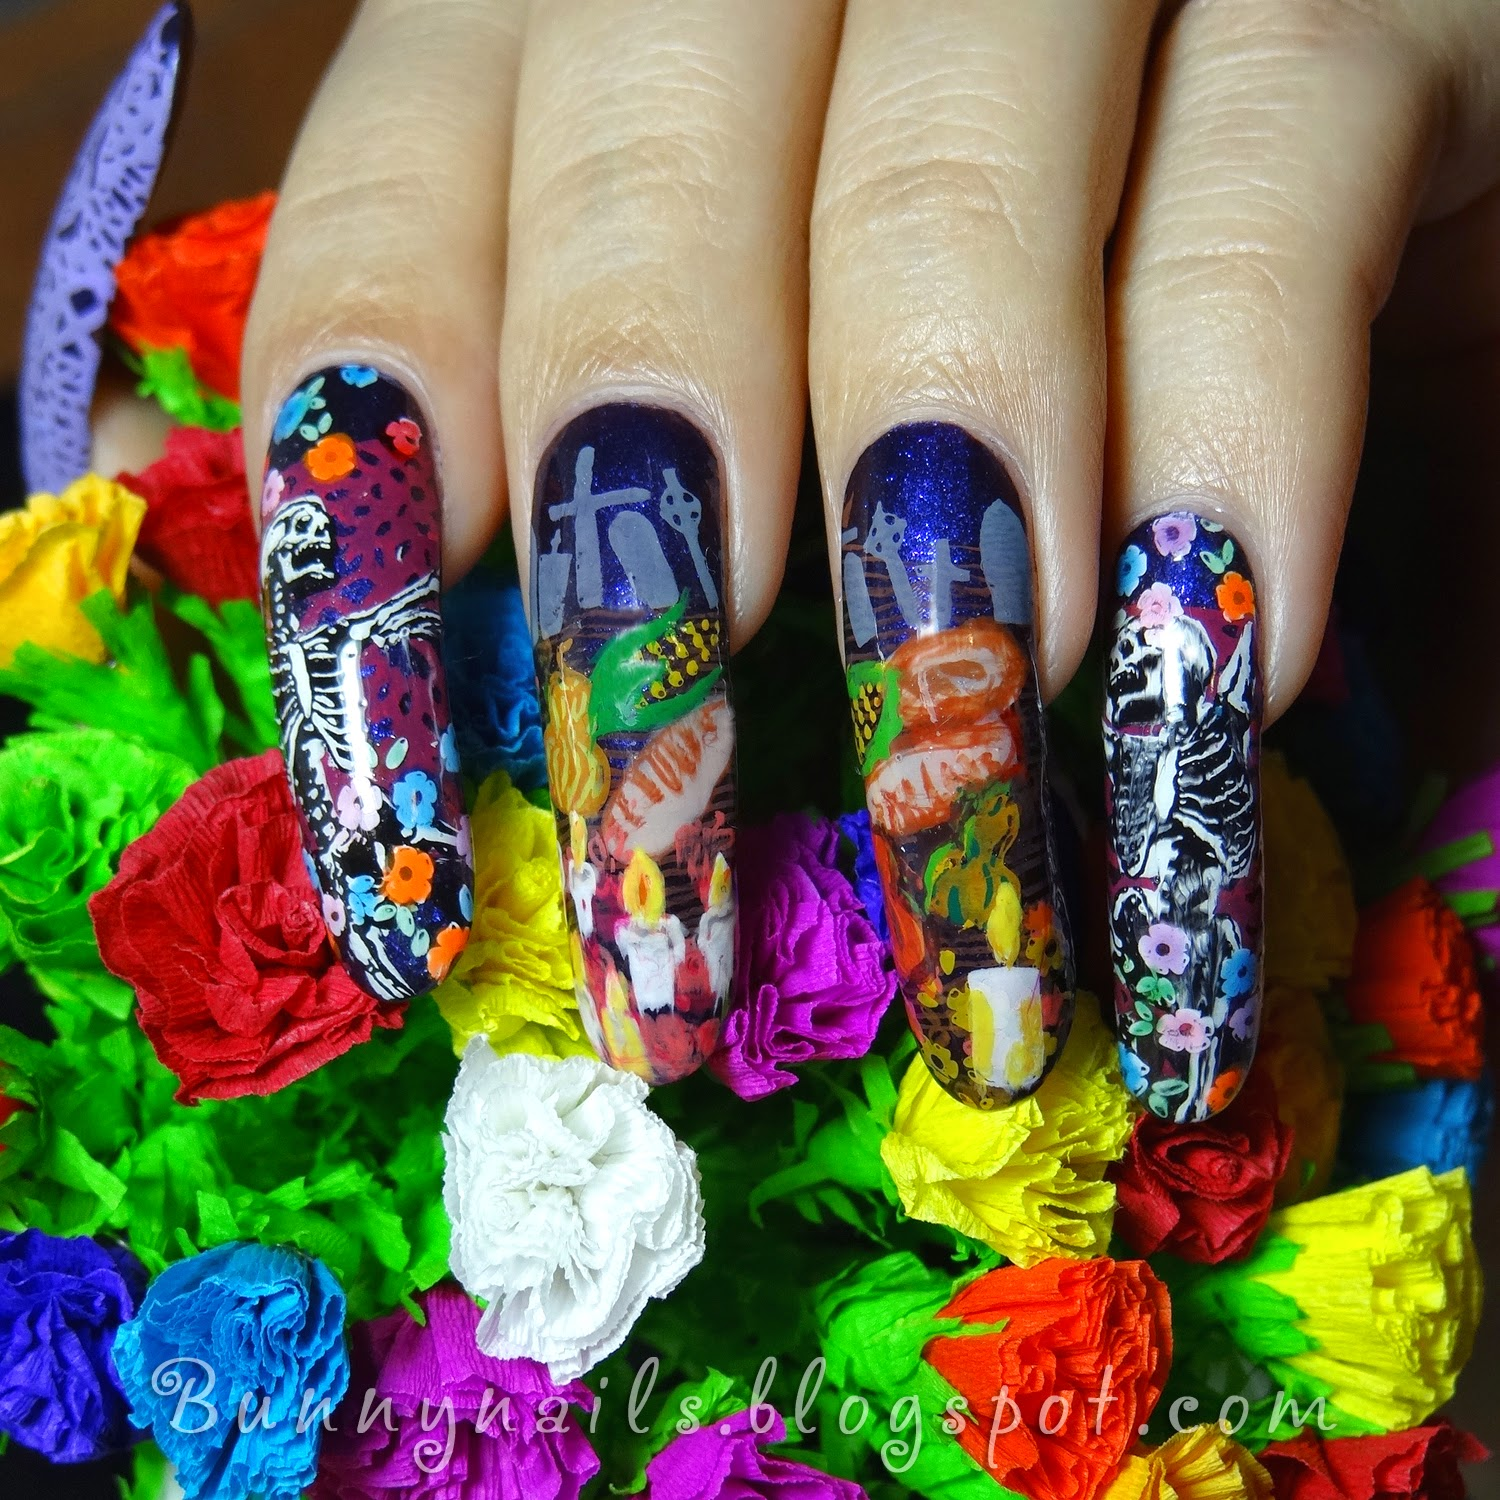 Bunny Nails: Nail Art for Día de muertos - Day of the Dead